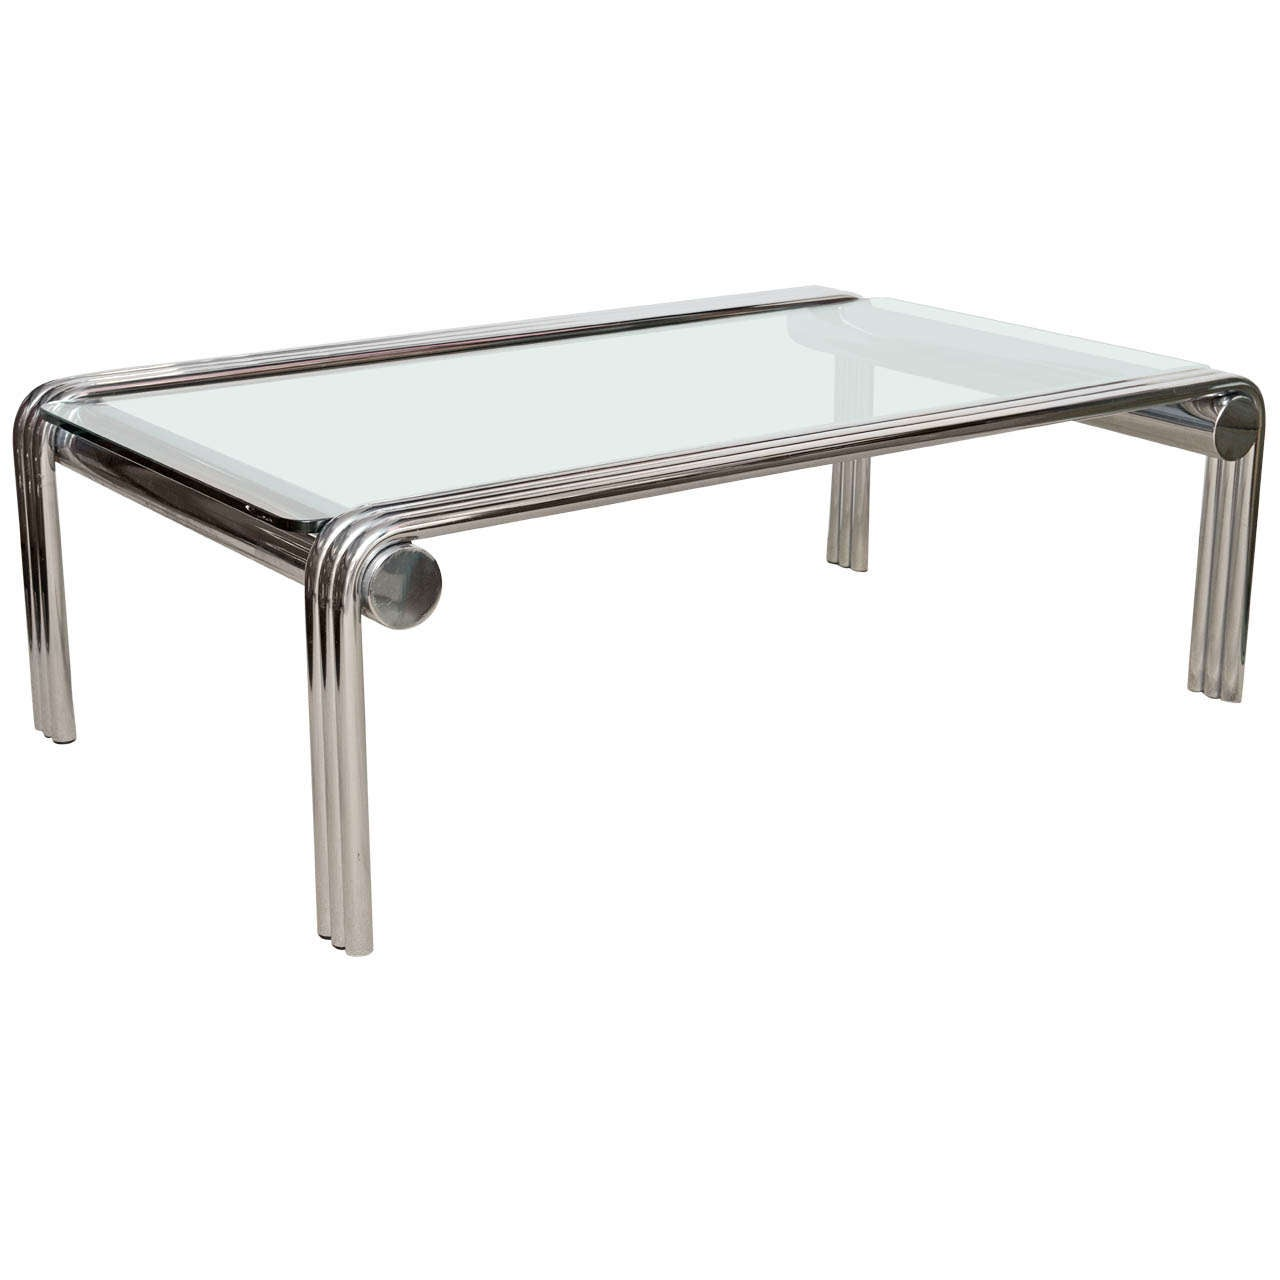 Chrome Coffee Table Mid Century Tubular Chrome And Glass Coffee Table At 1stdibs